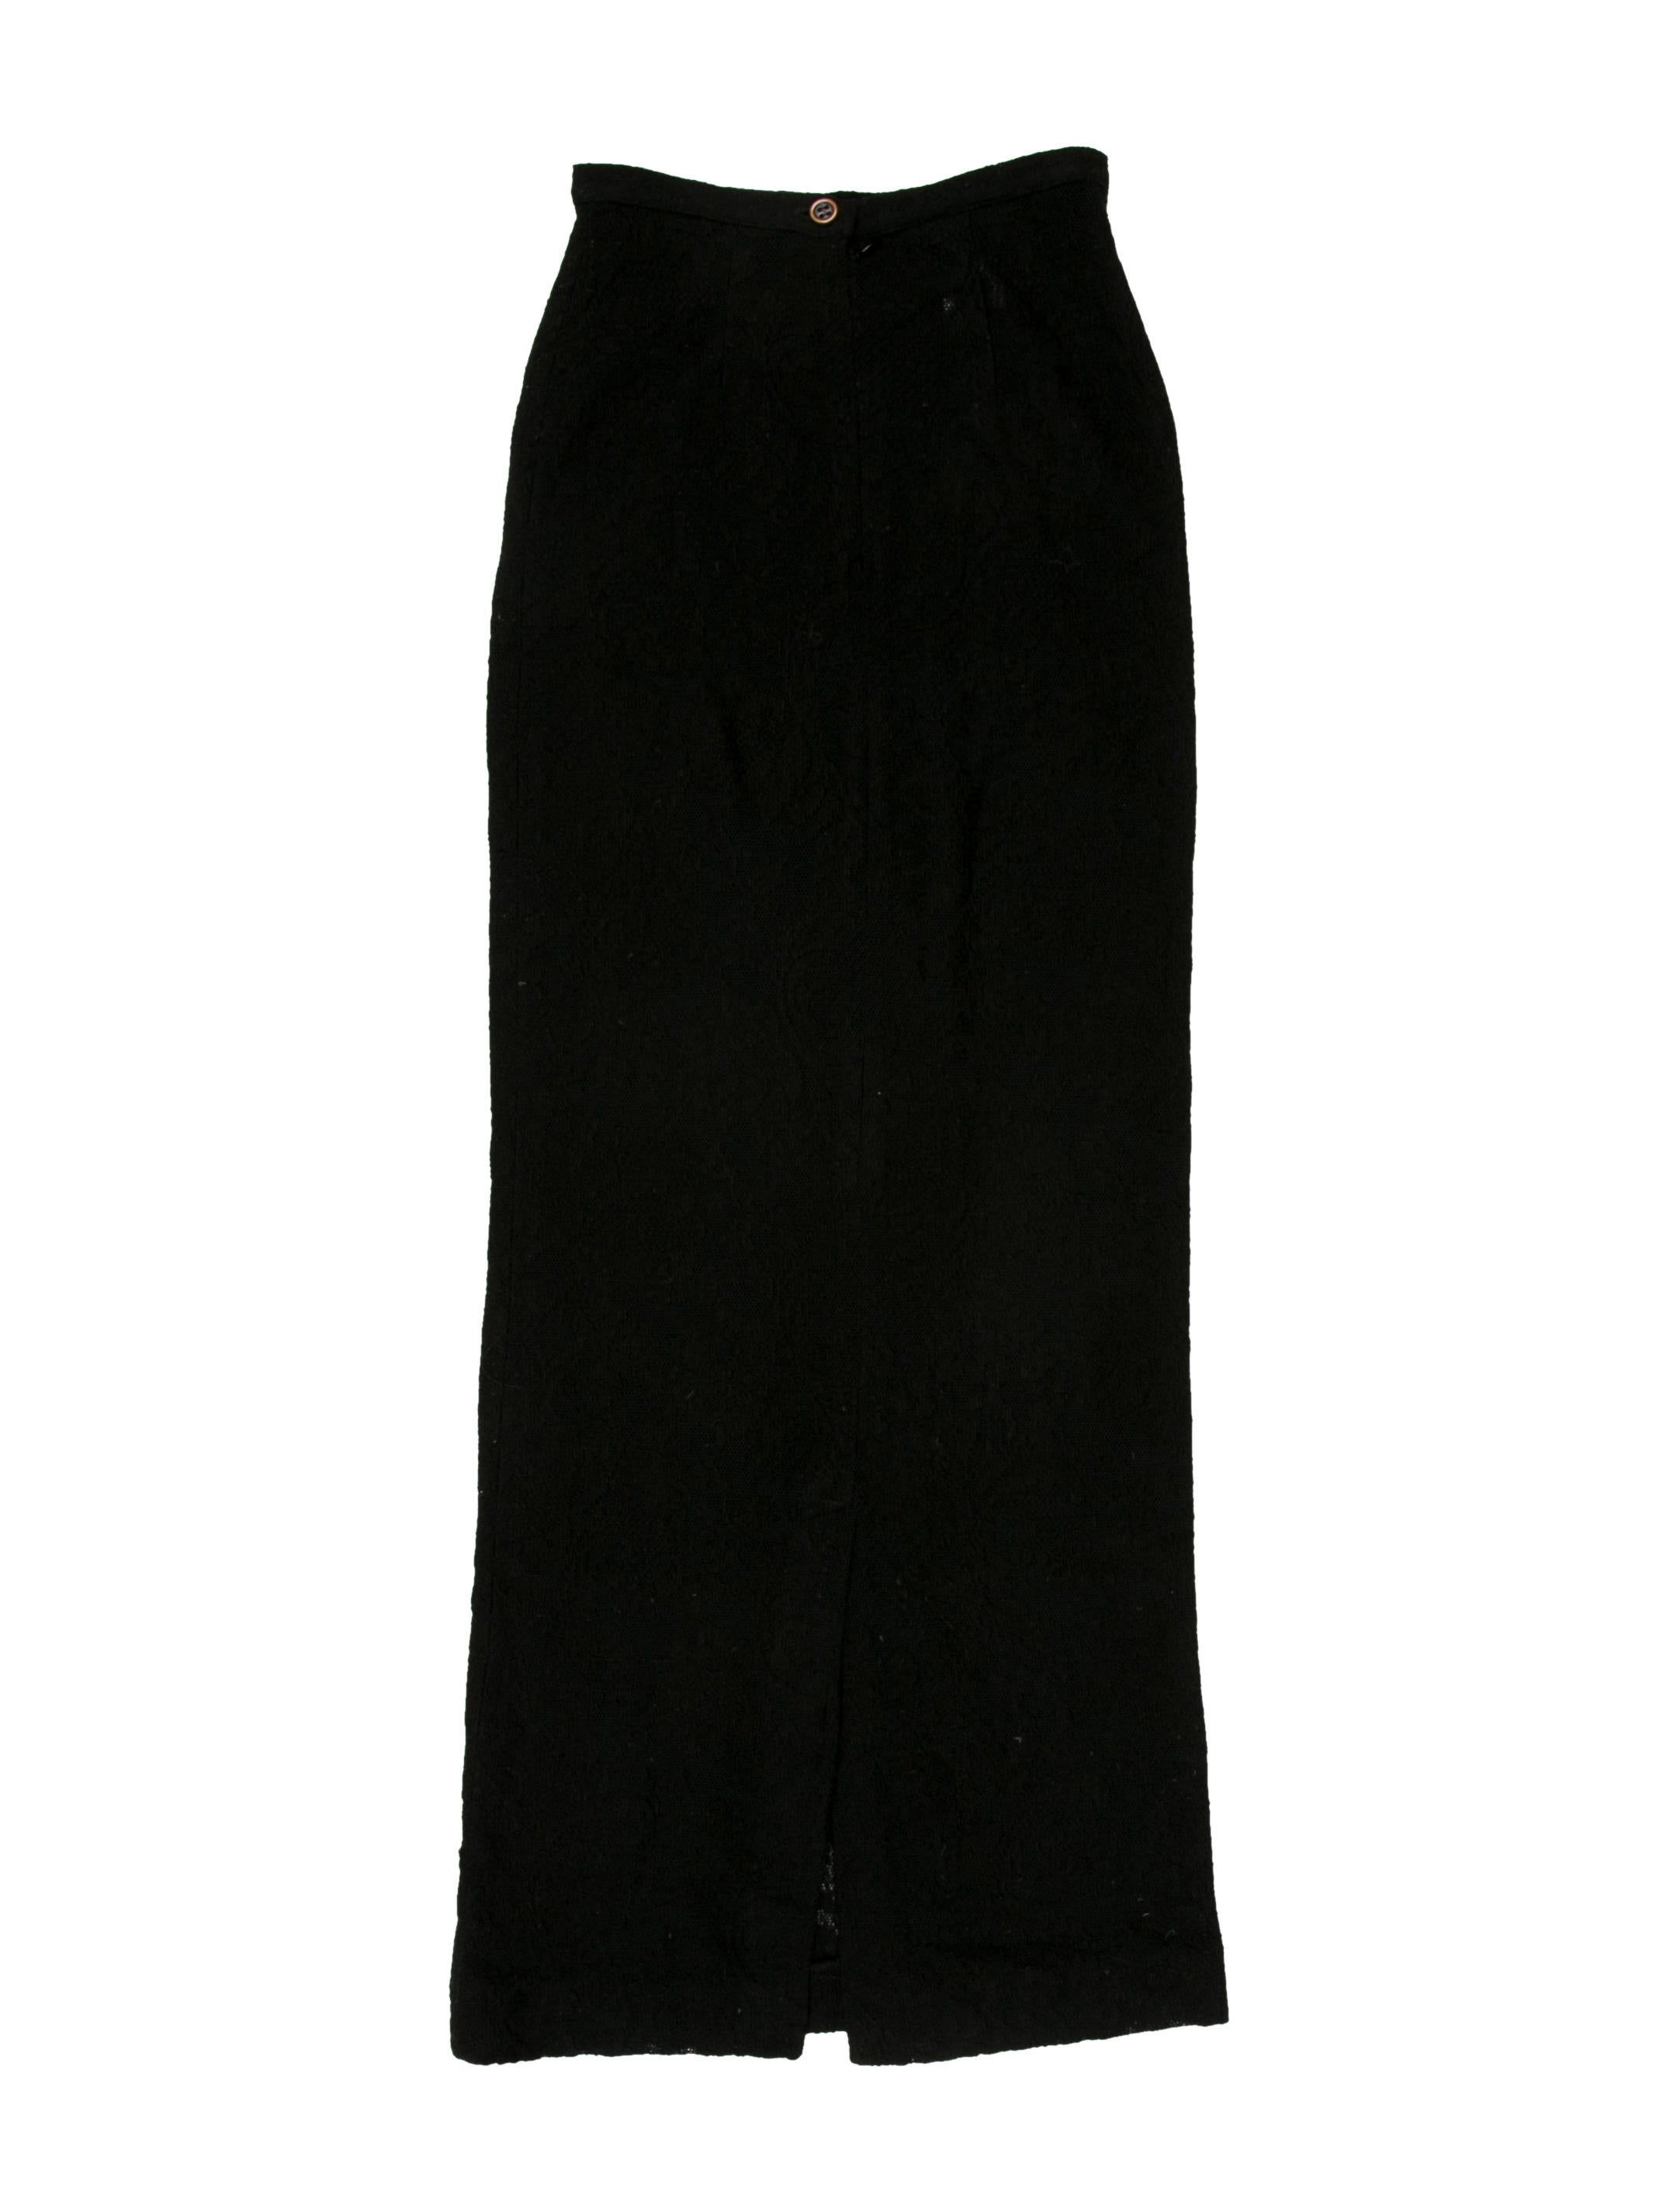 d g wool maxi skirt clothing wdg31276 the realreal